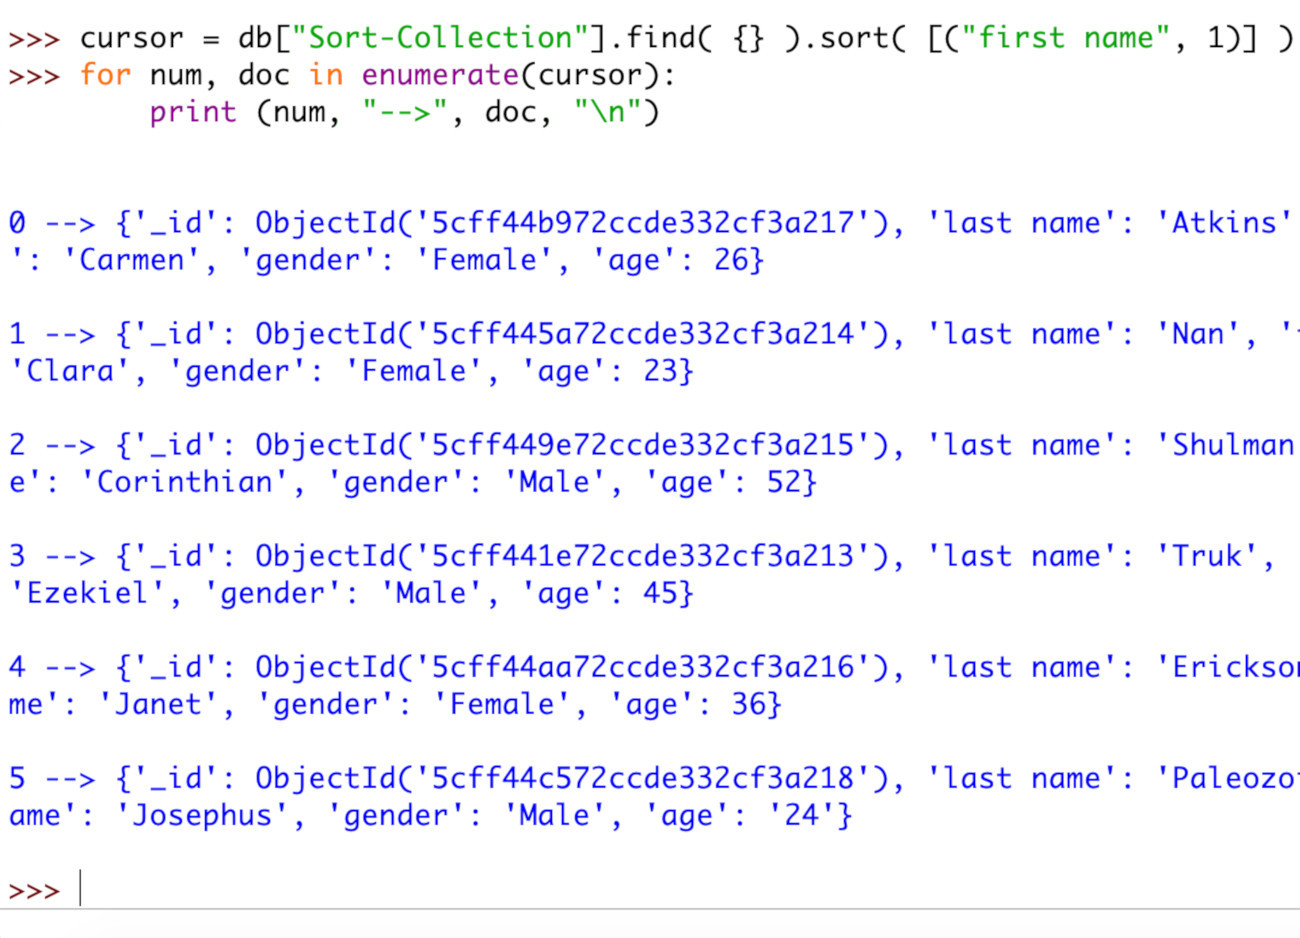 Screenshot of the enumerate() function iterating over a PyMongo cursor object returned by the sort() method